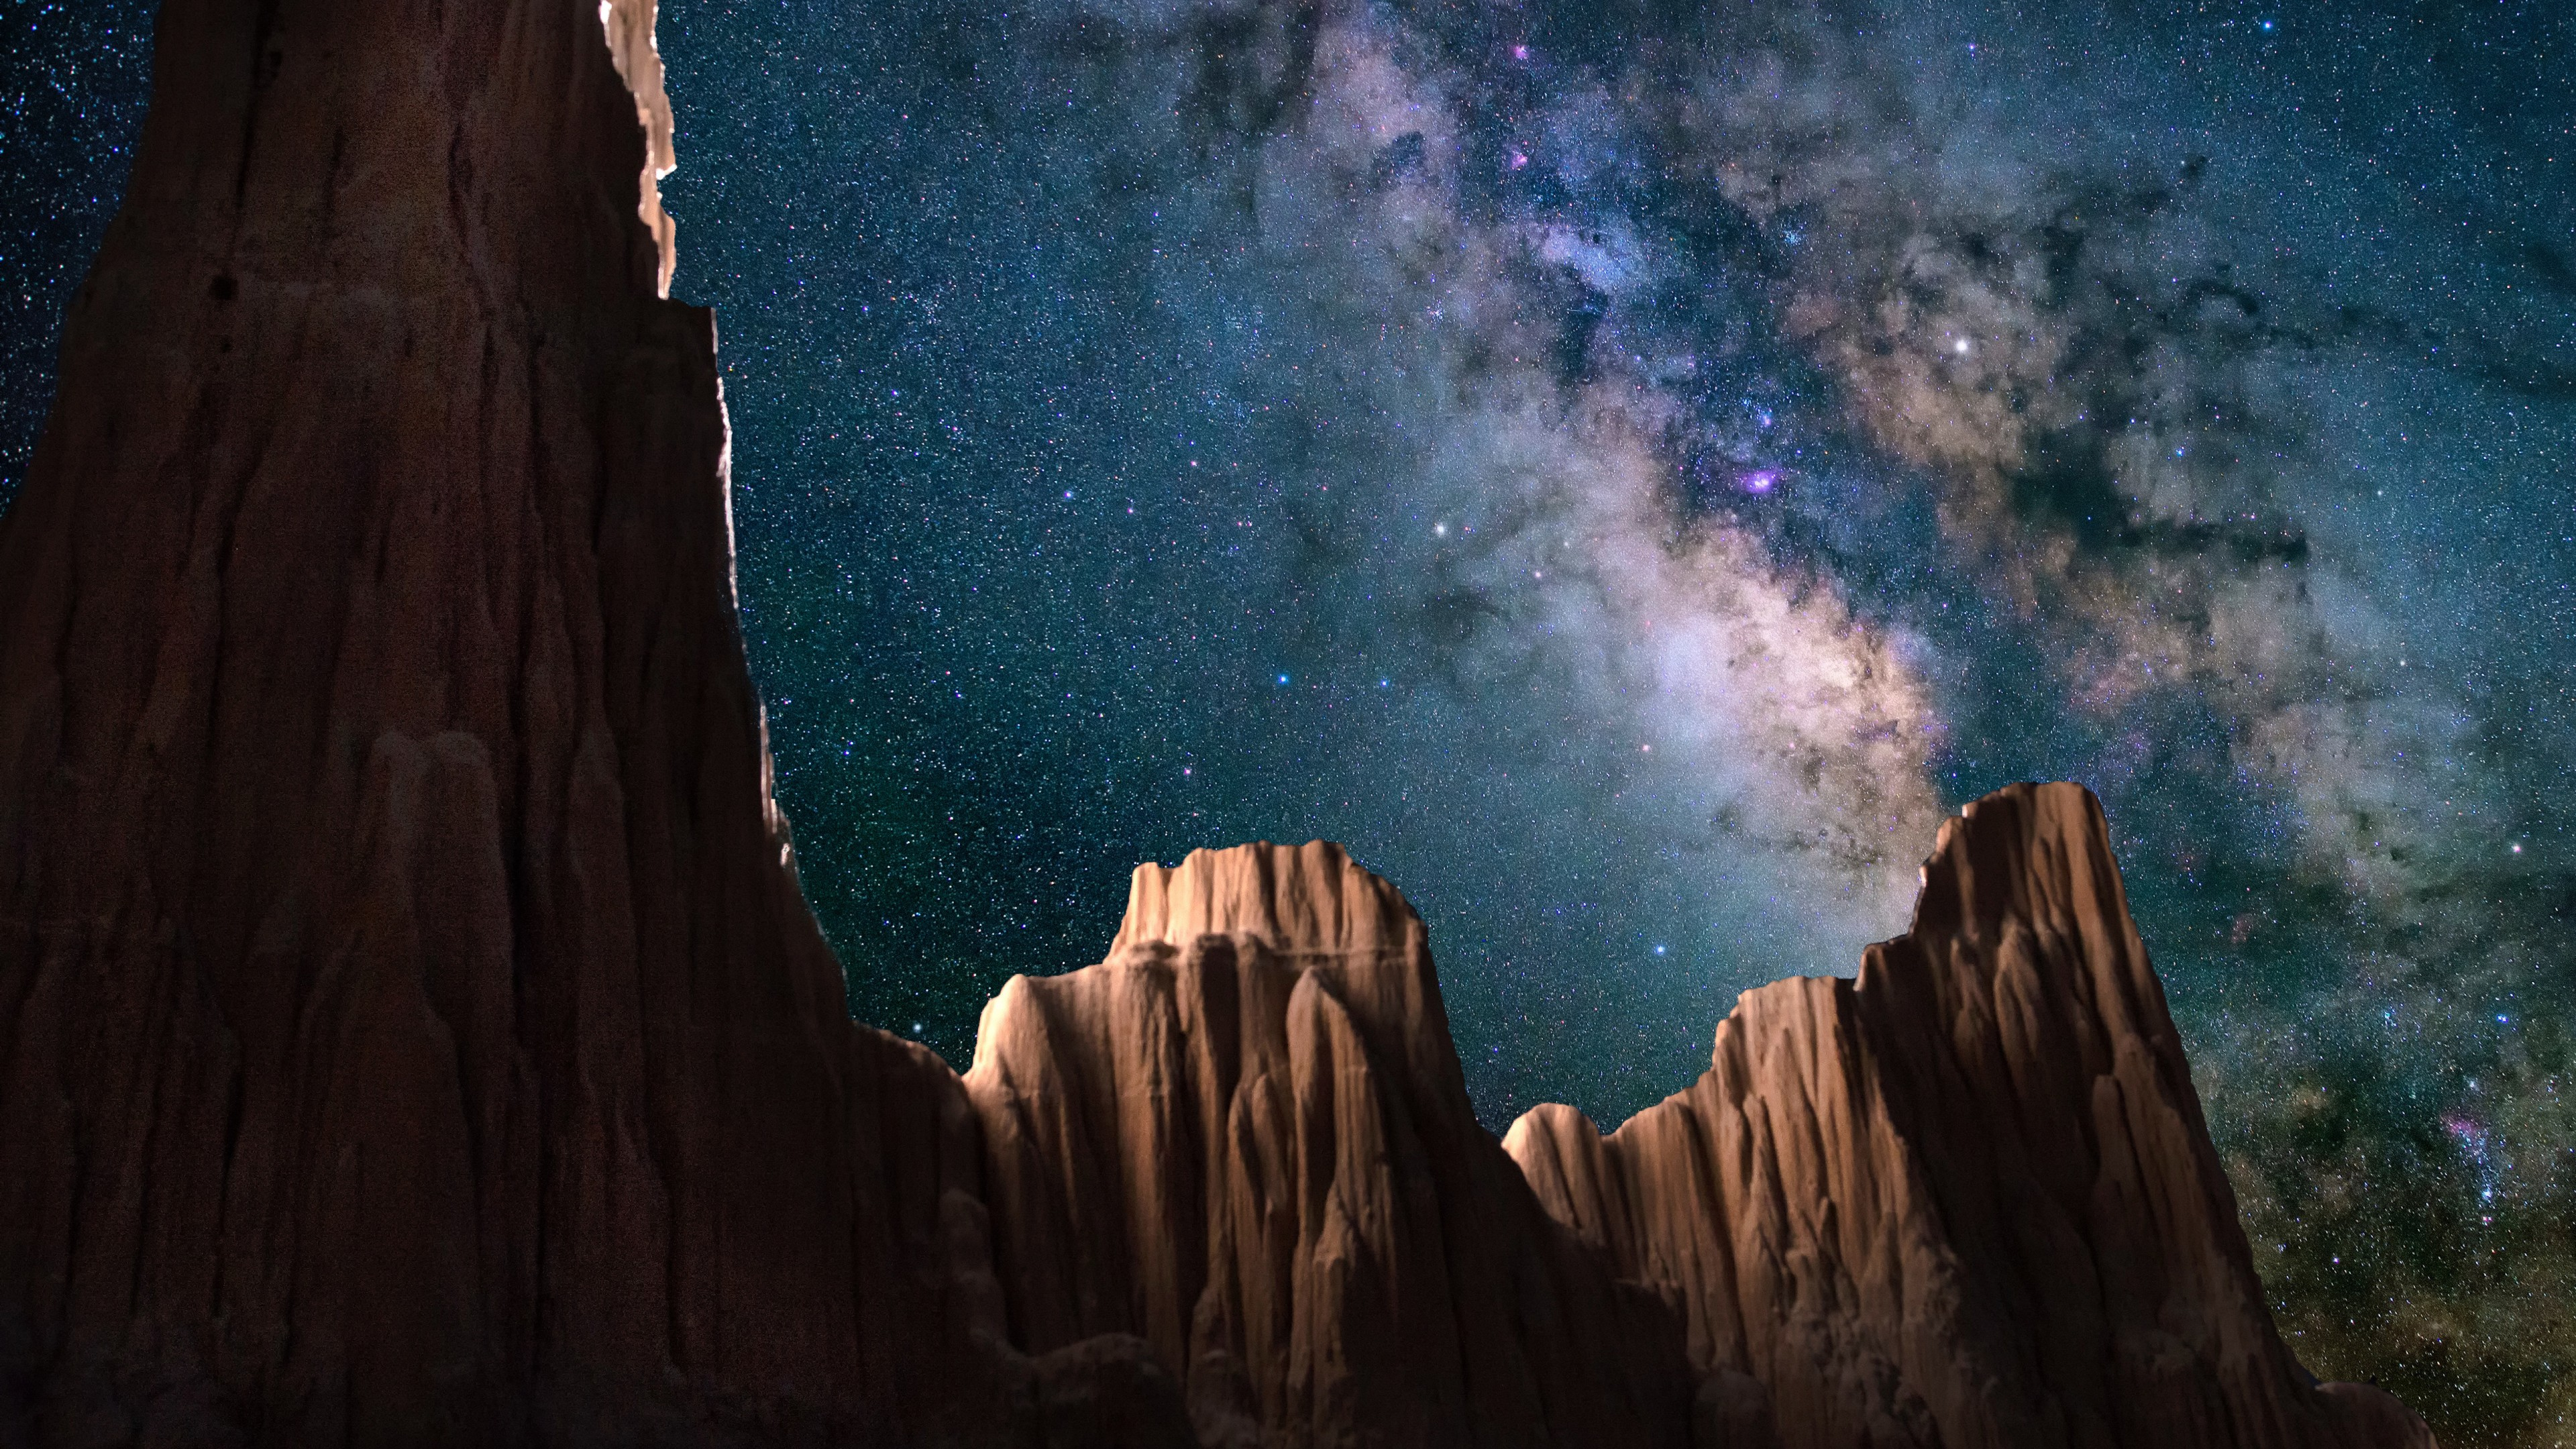 3d Wallpaper For Ipad Pro Starry Sky Cathedral Gorge State Park 4k Wallpapers Hd